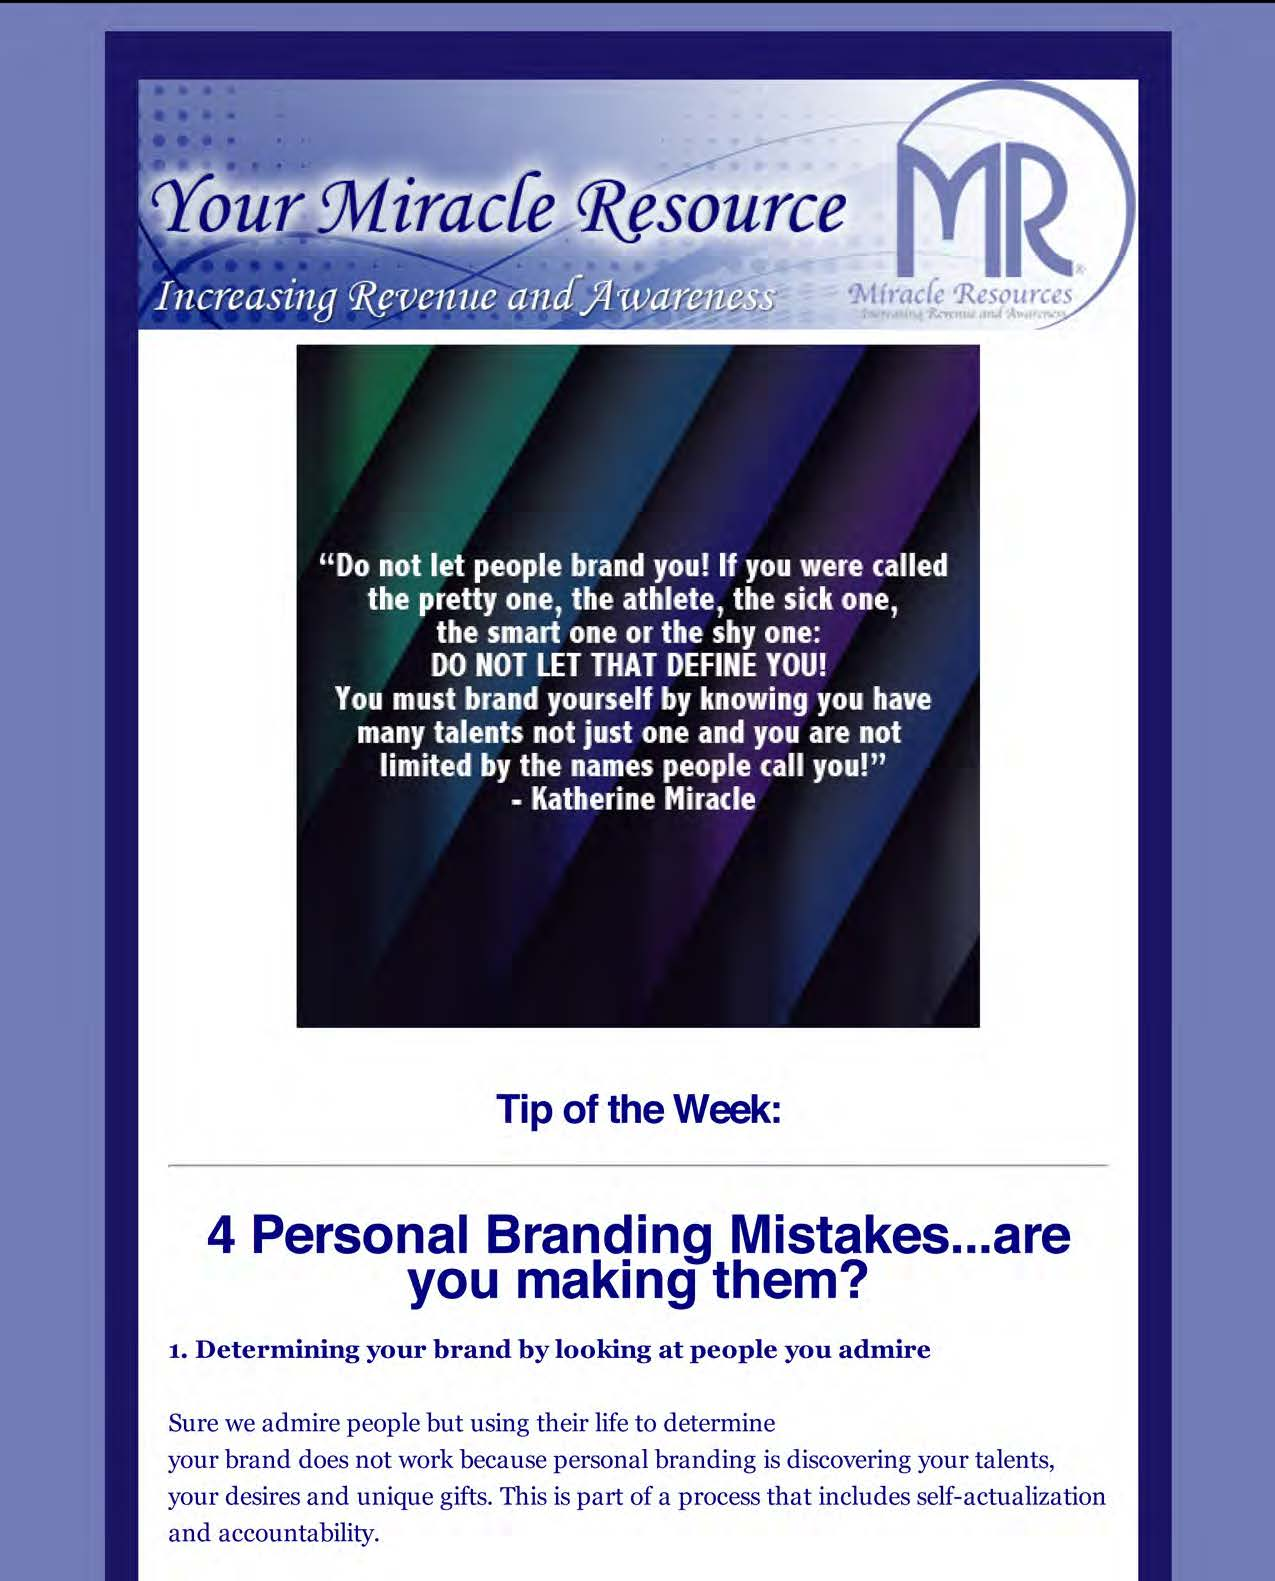 Blog Tip of the Week; 4 Personal Branding Mistakes